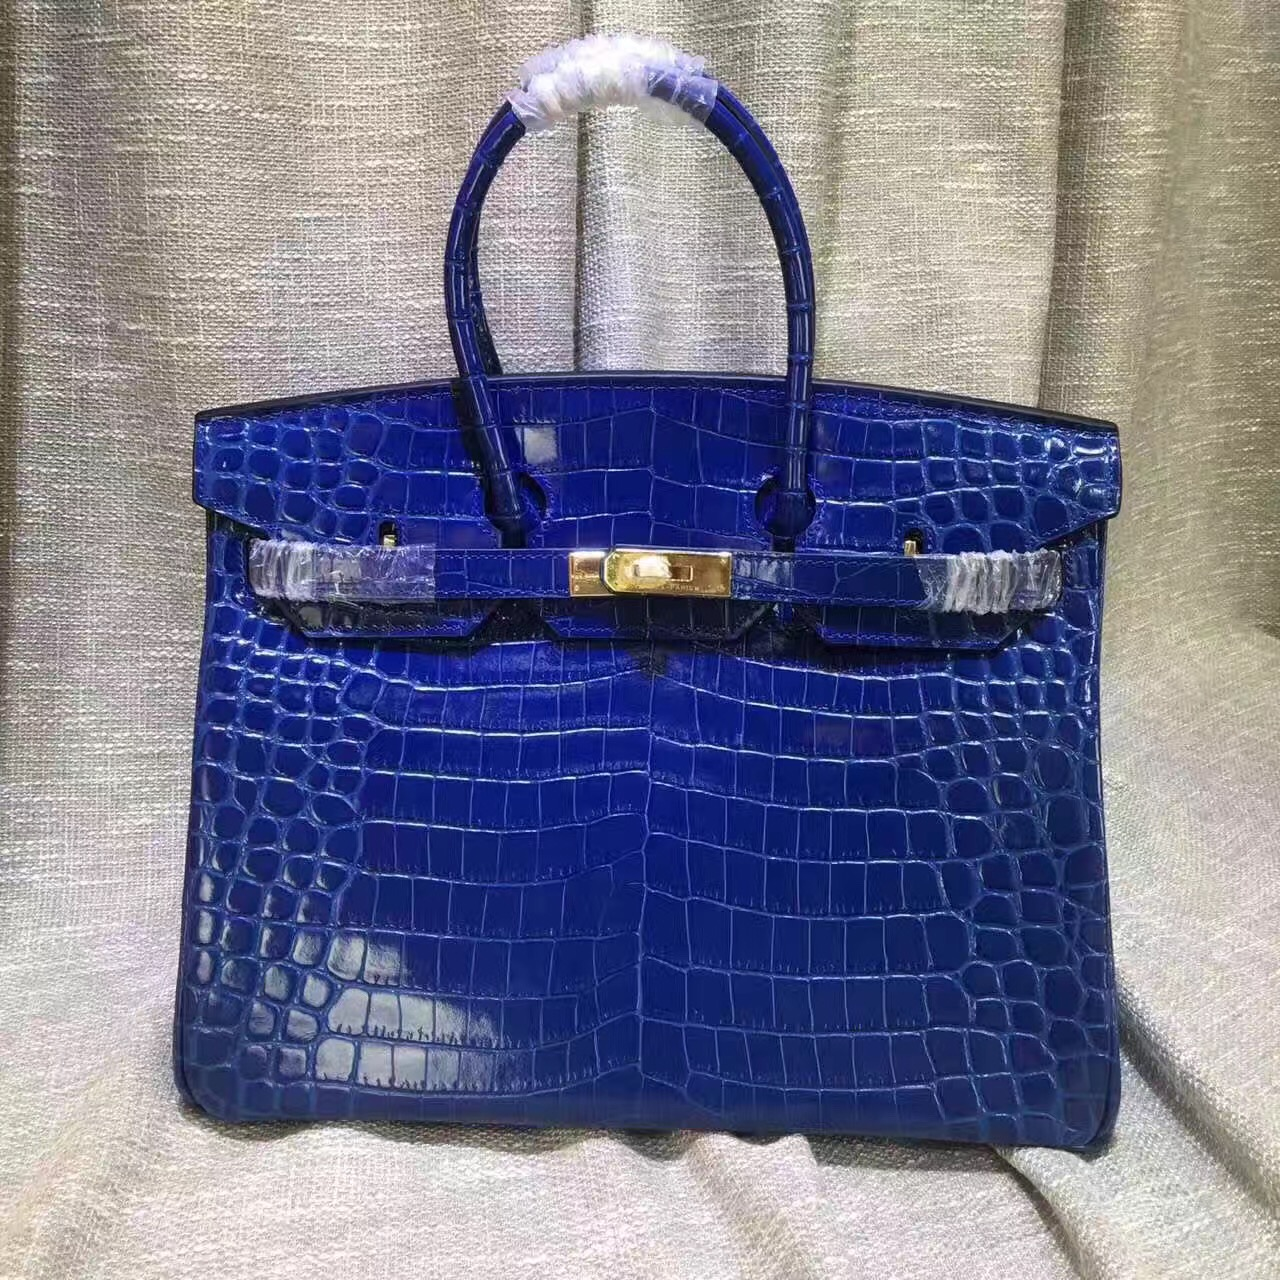 Hermes Birkin 35cm Handbag Crocodile Leather Electric Blue Gold